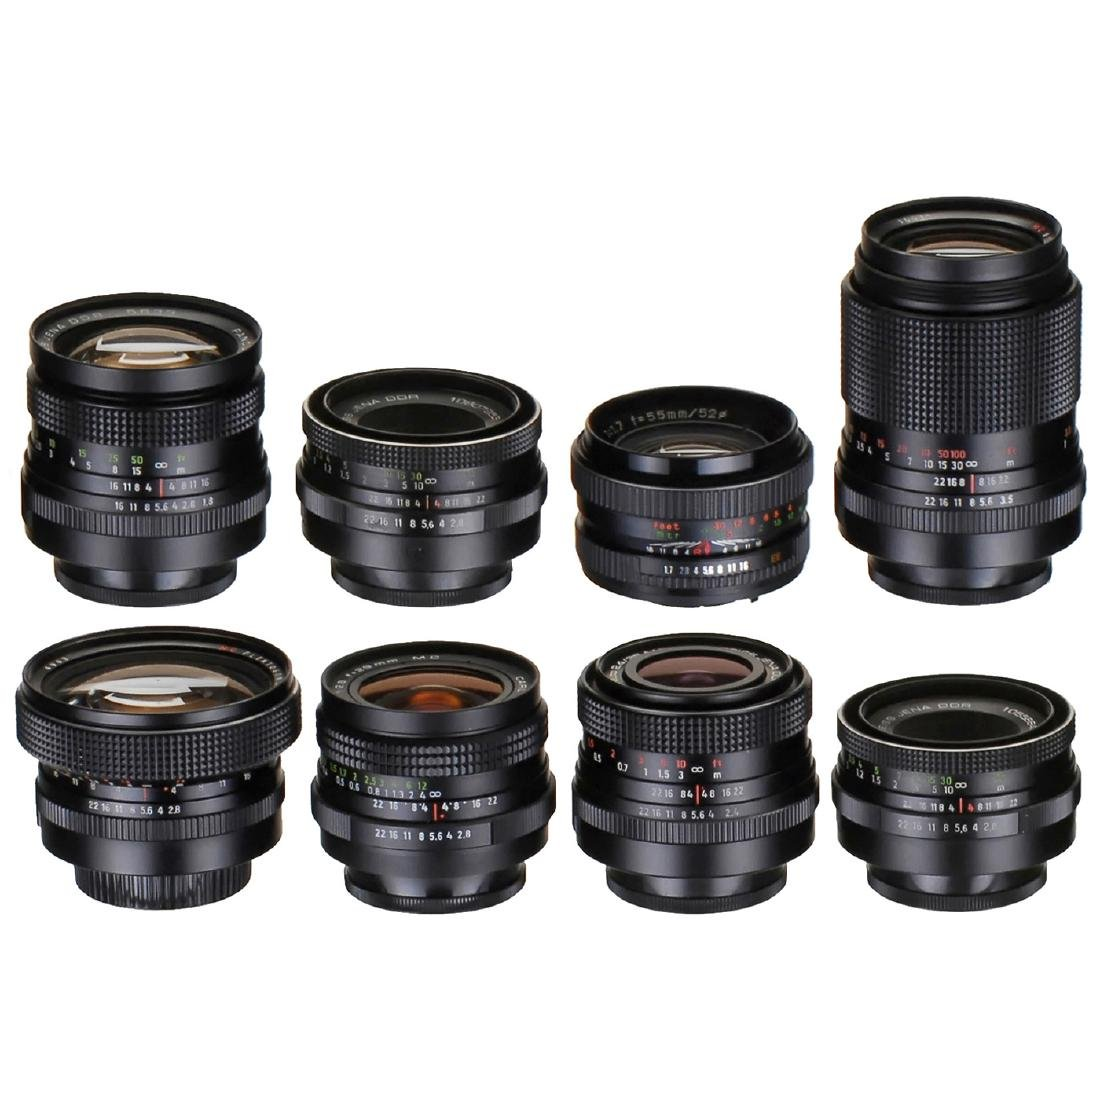 7 Zeiss Jena Lenses (M42 Screw-Mount)